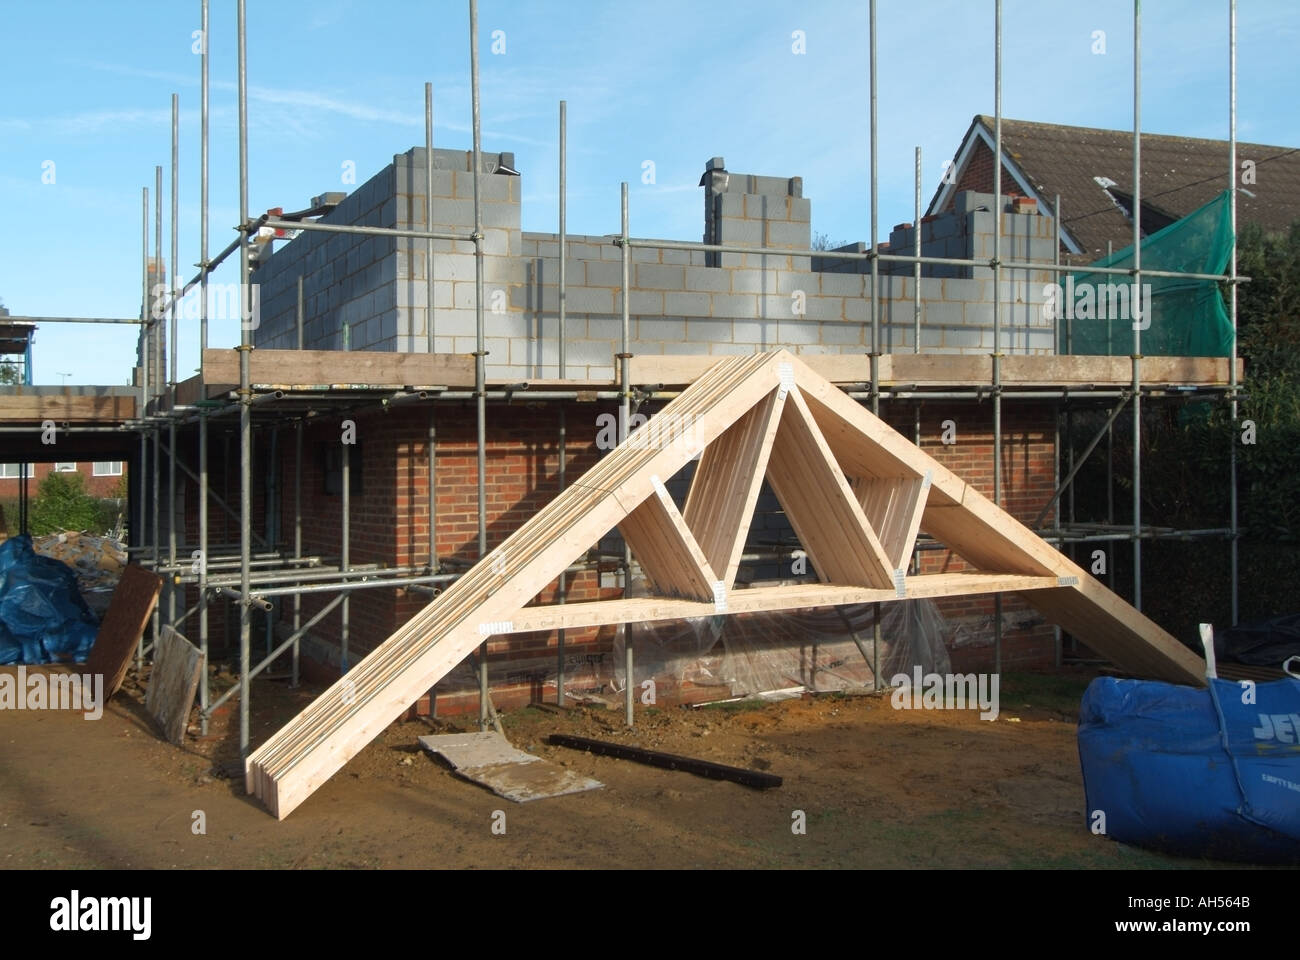 House building site prefabricated timber roof trusses for Prefabricated roof